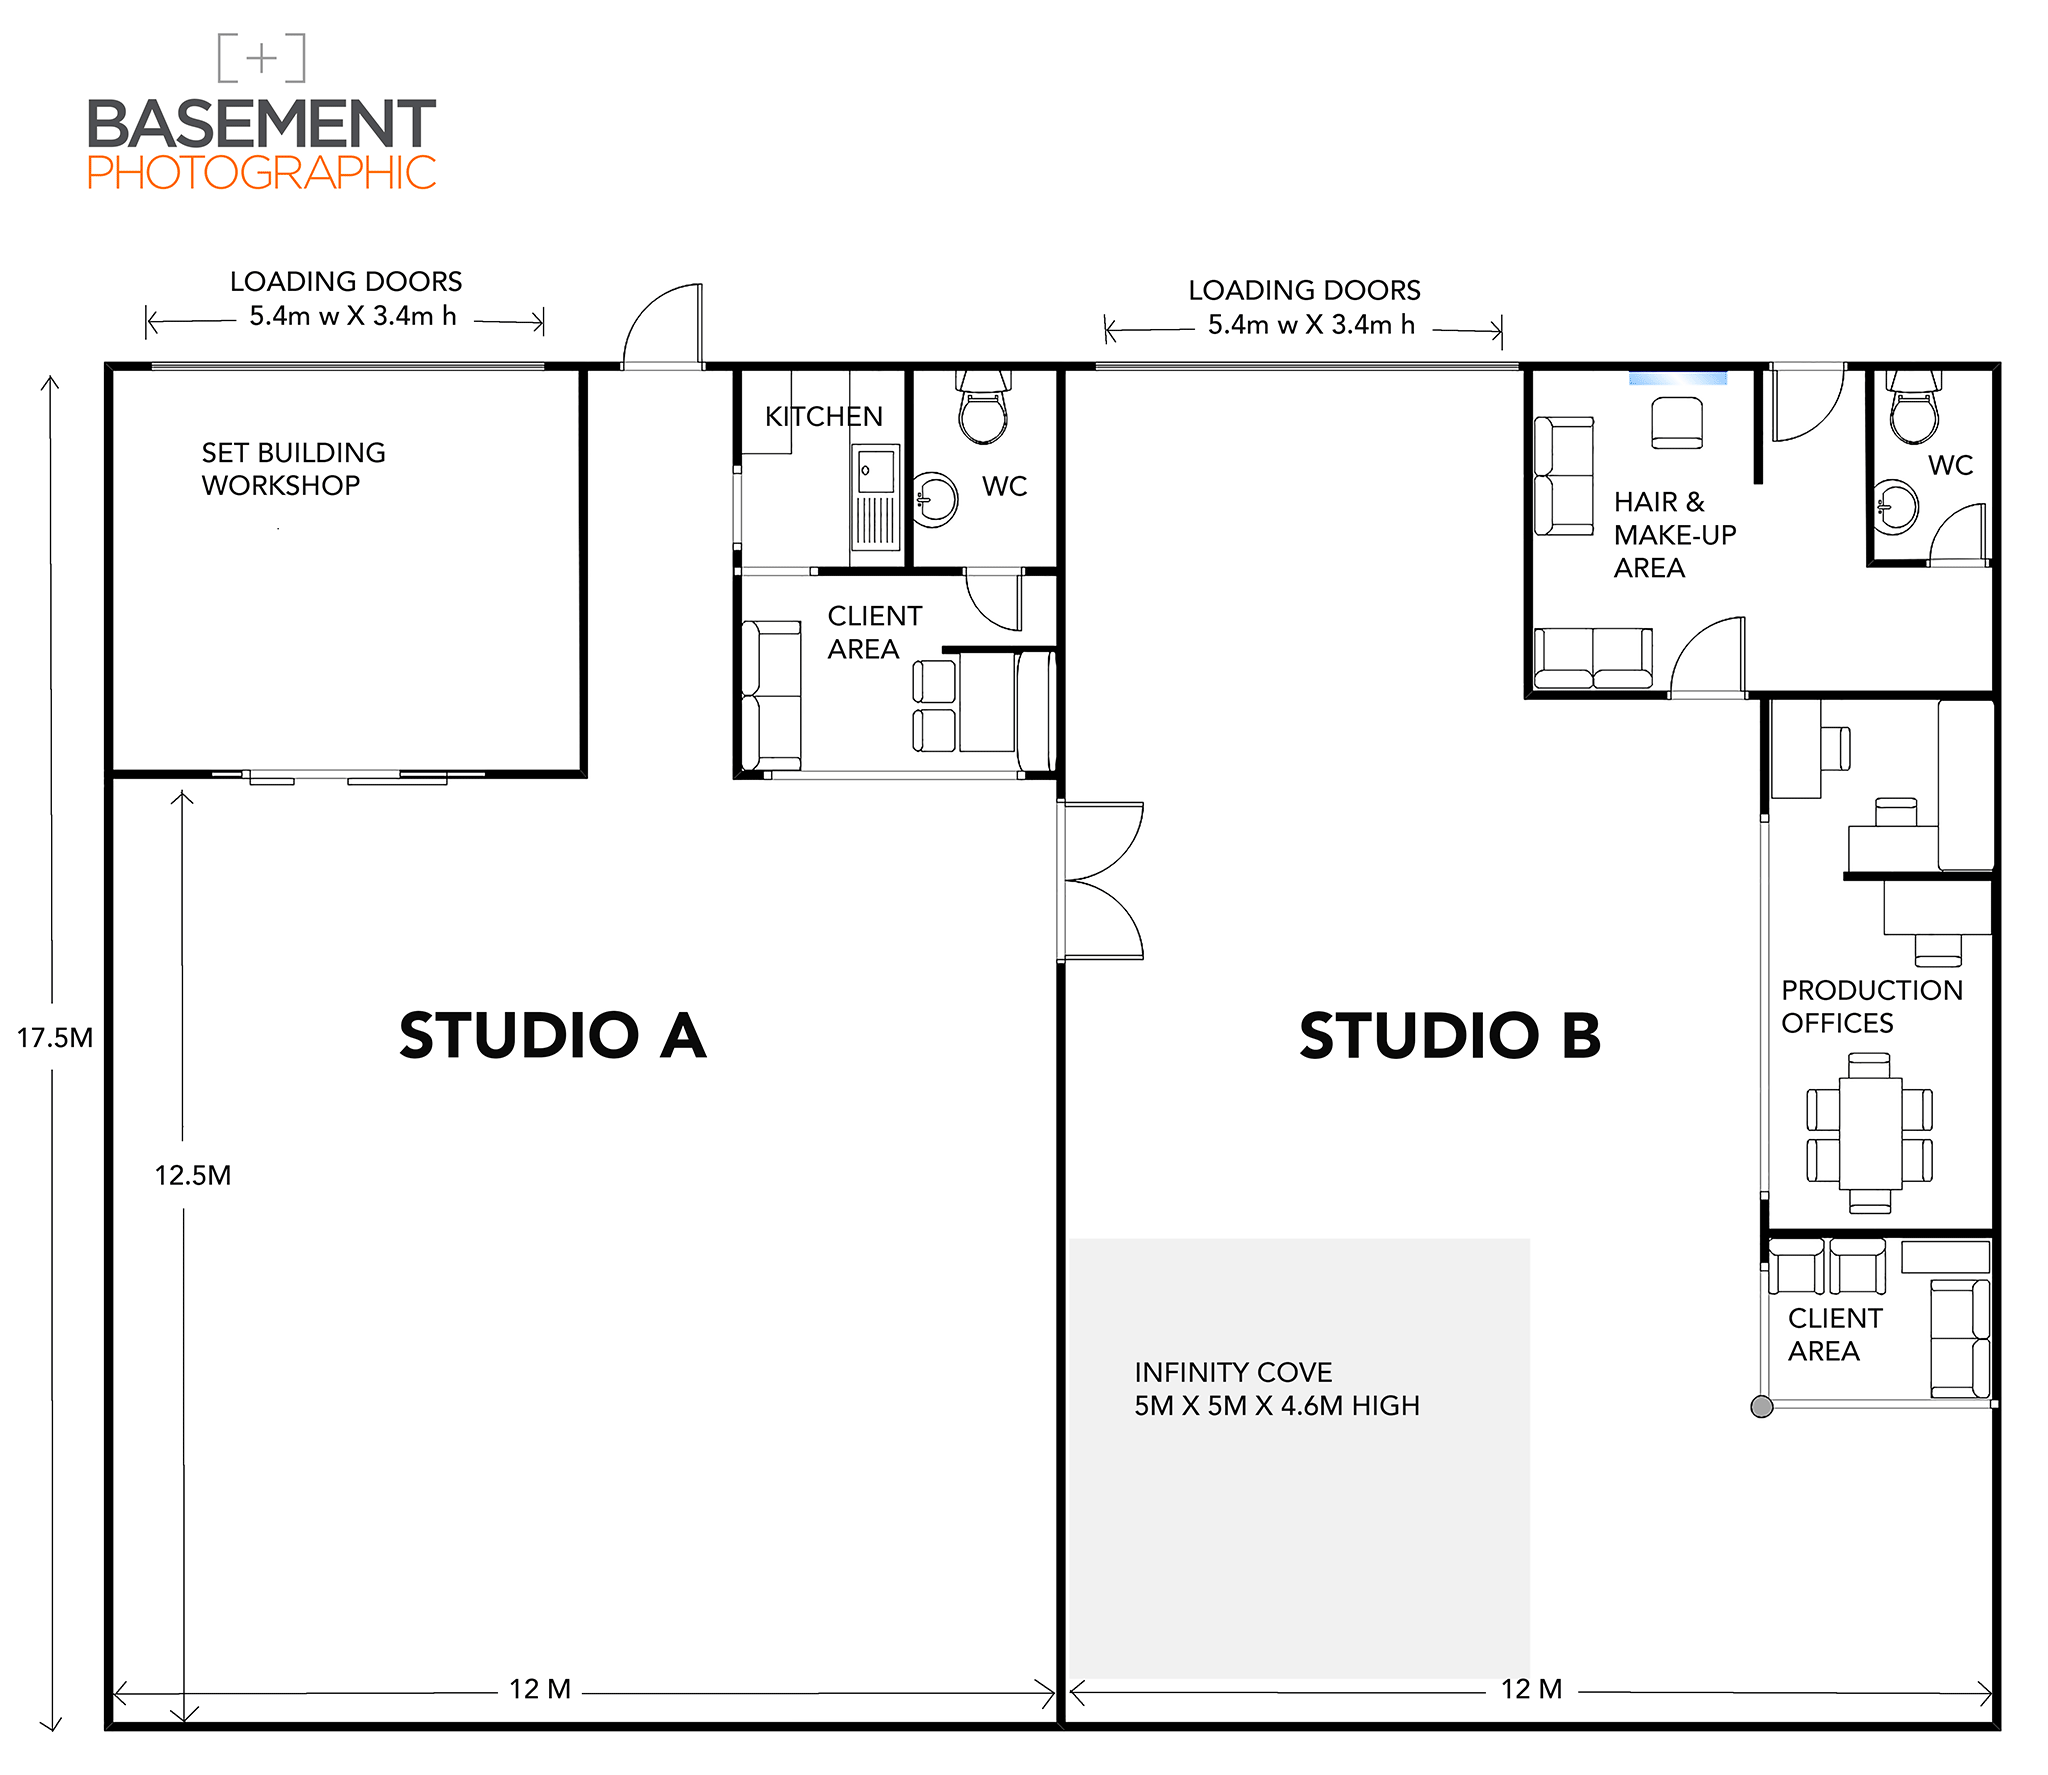 Basement Photographic Studio Floorplan